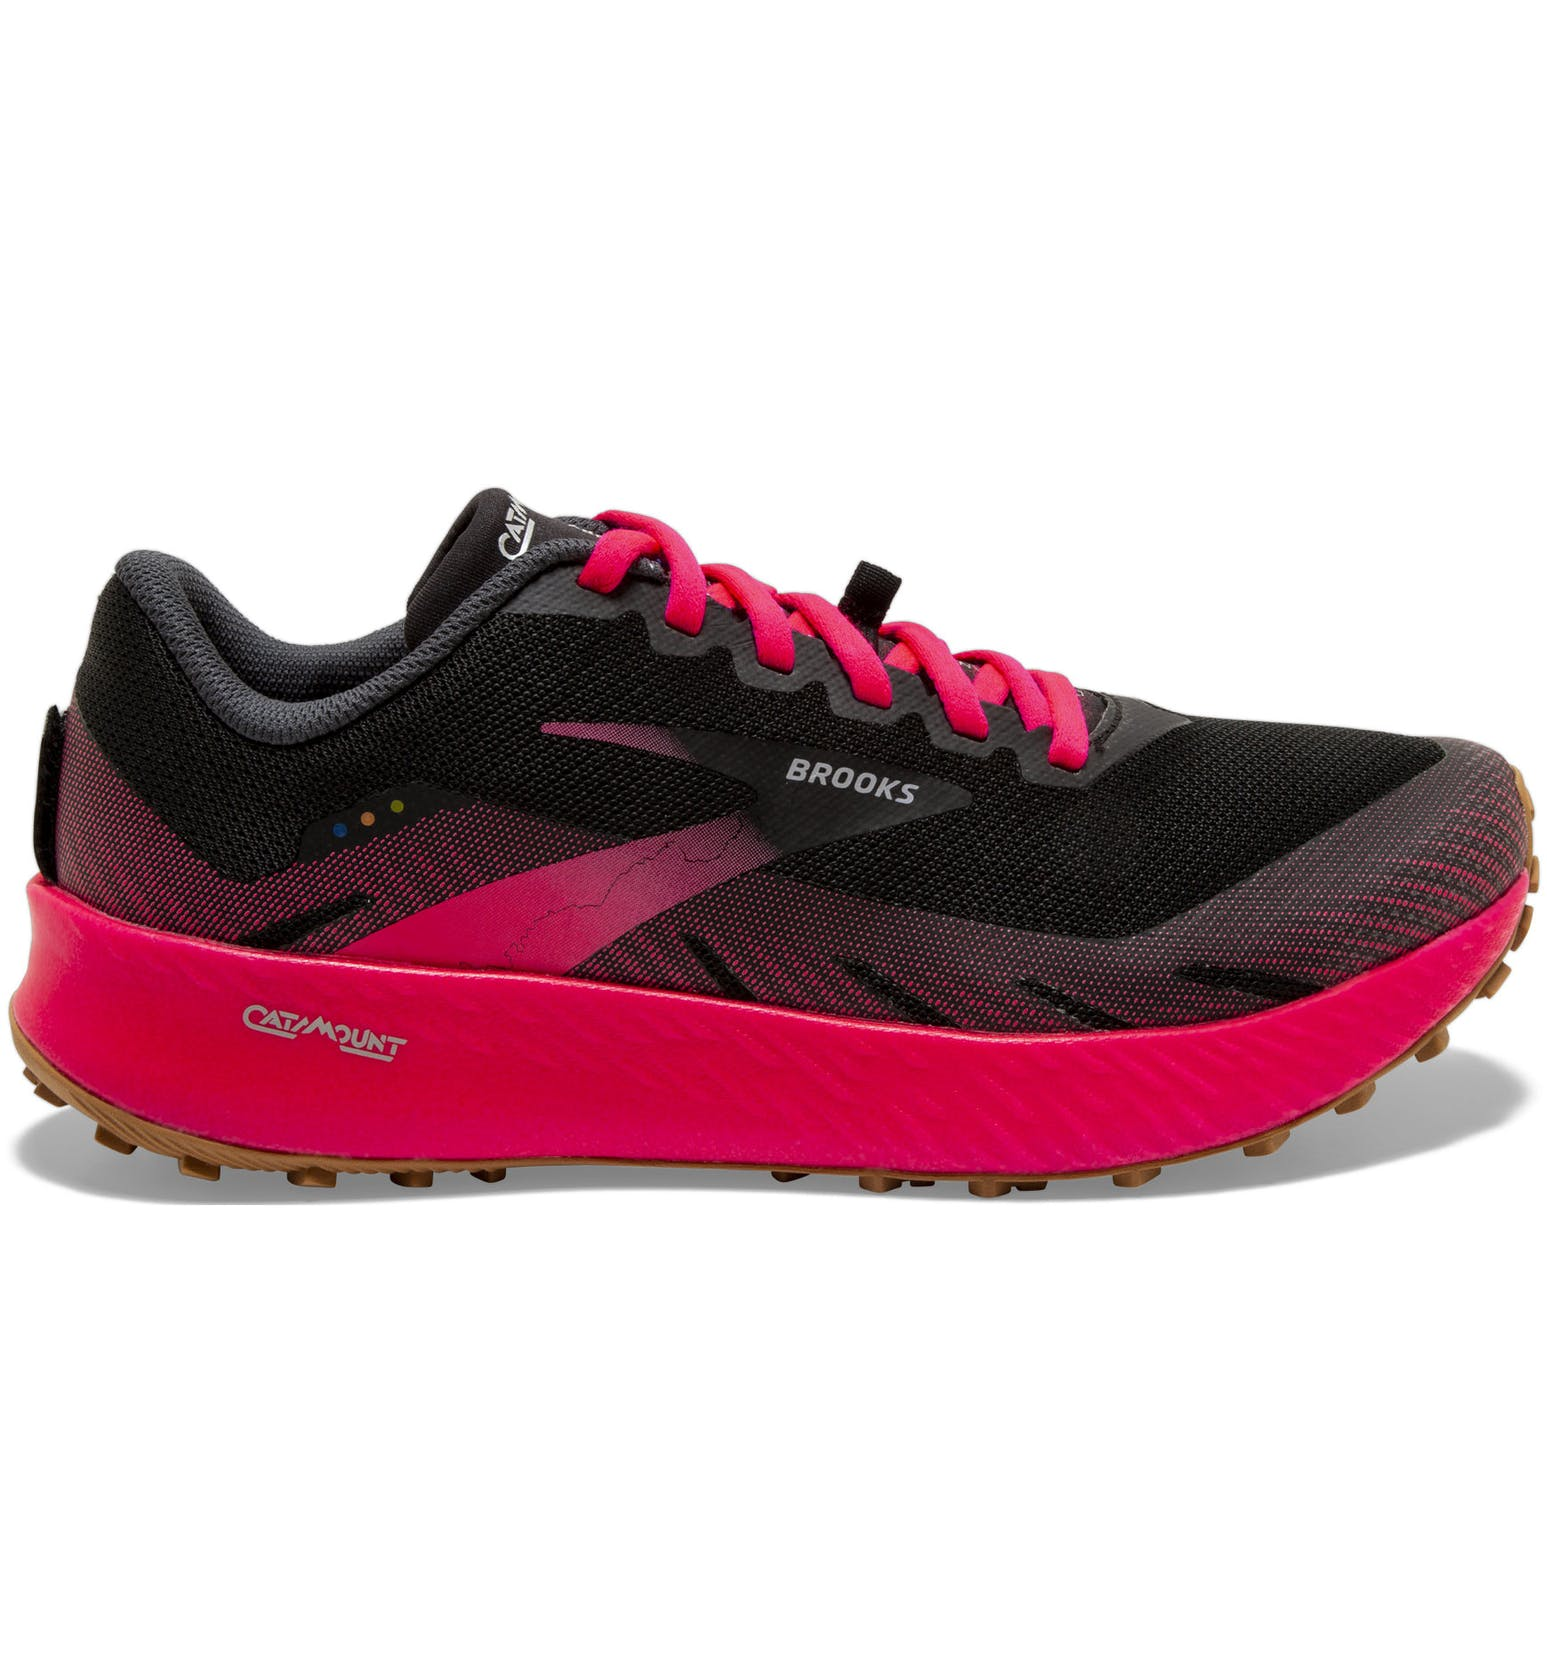 Brooks Catamount - Trailrunningschuh - Damen